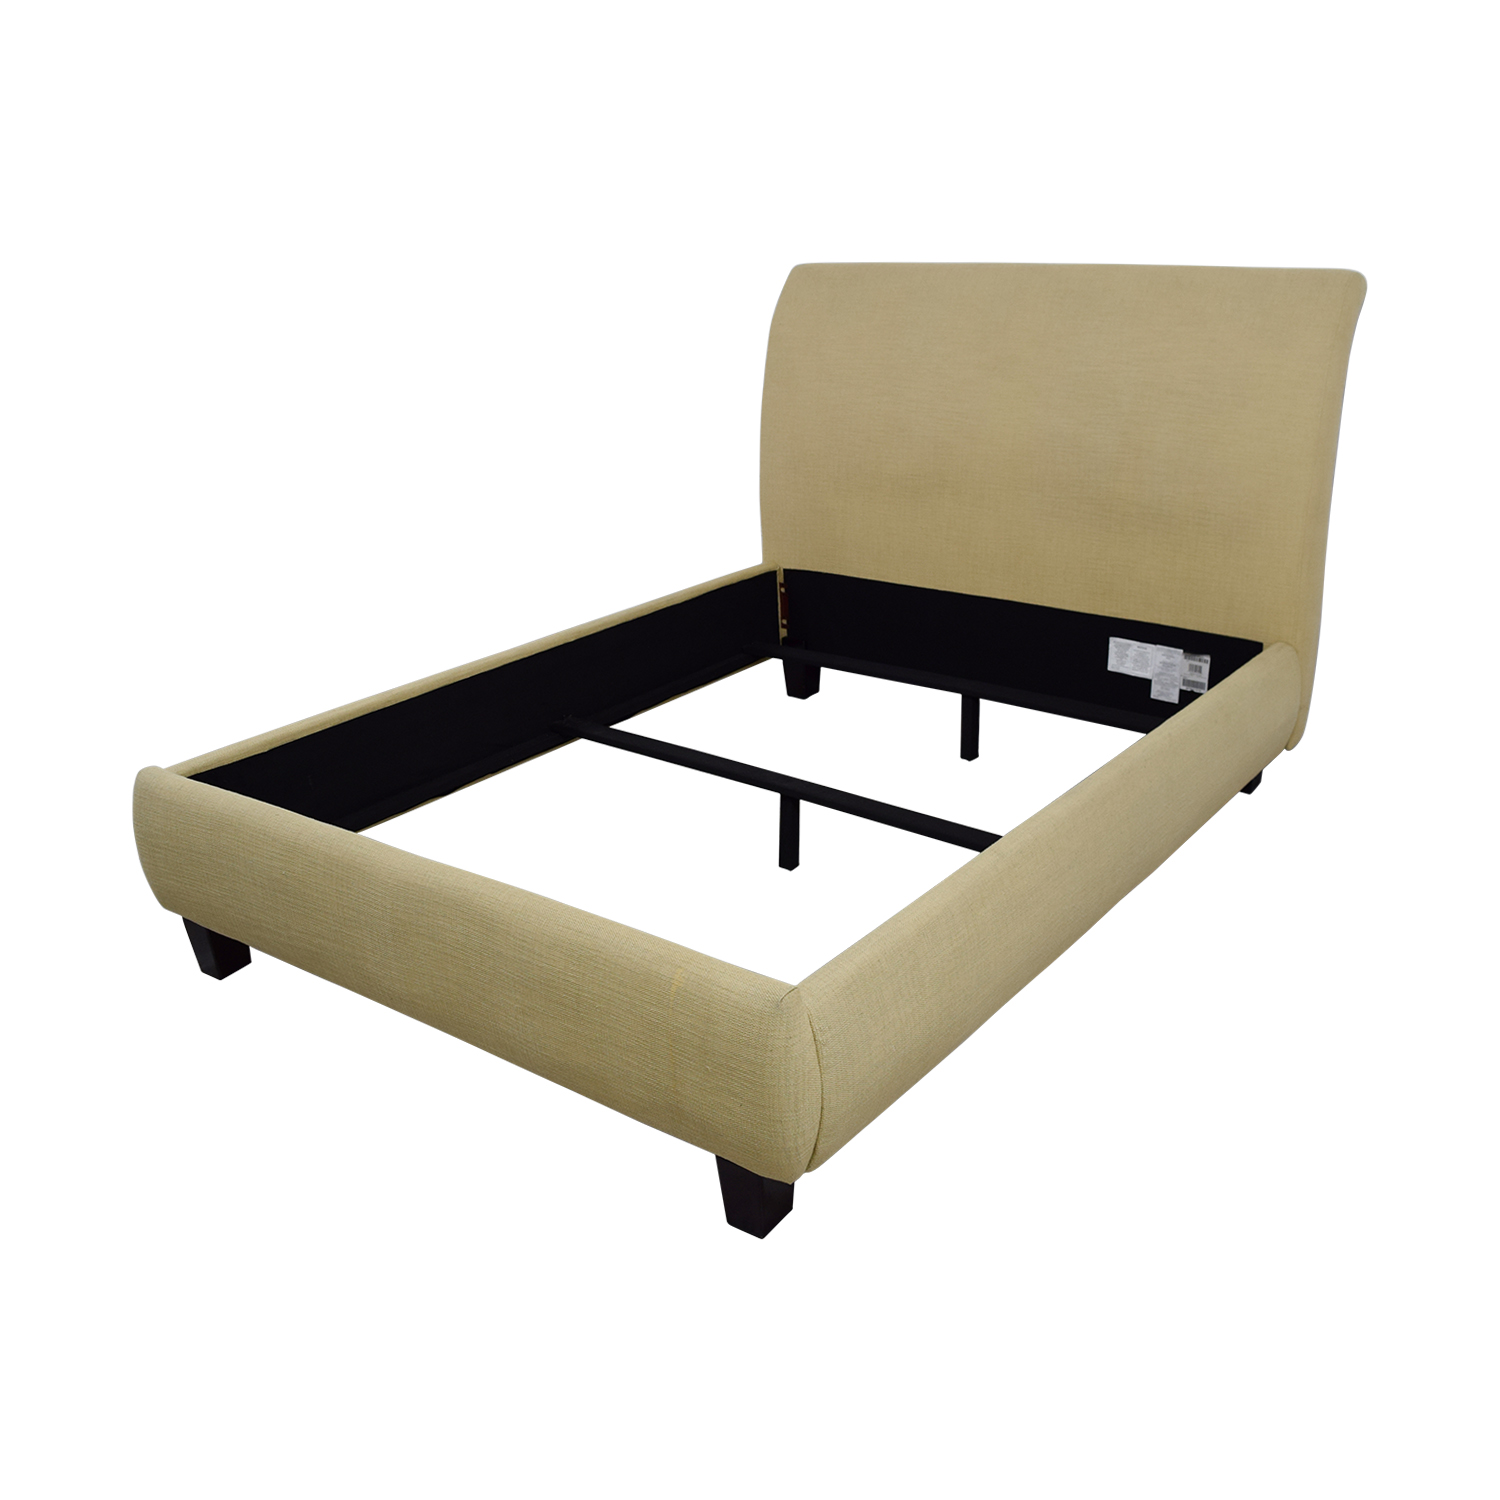 Ashley Furniture Upholstered Queen Bed / Beds